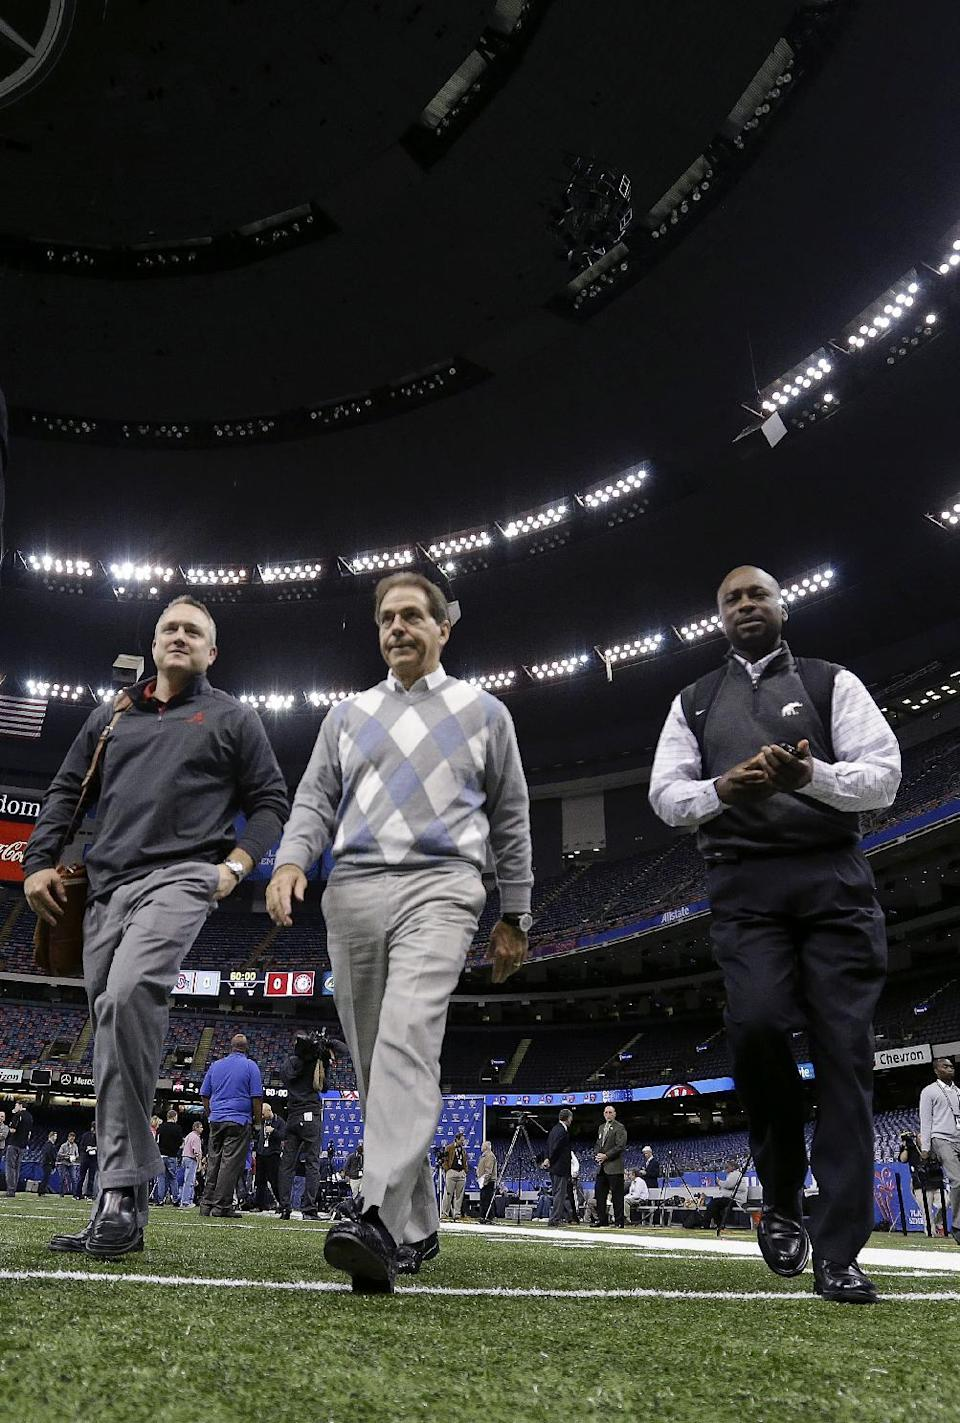 Alabama head coach Nick Saban walks on the field at the conclusion of media day at the Mercedes-Benz Superdome in New Orleans, Tuesday, Dec. 30, 2014. They are scheduled to face Ohio State in the Allstate Sugar Bowl NCAA football game, which will be played on New Year's Day. (AP Photo/Gerald Herbert)